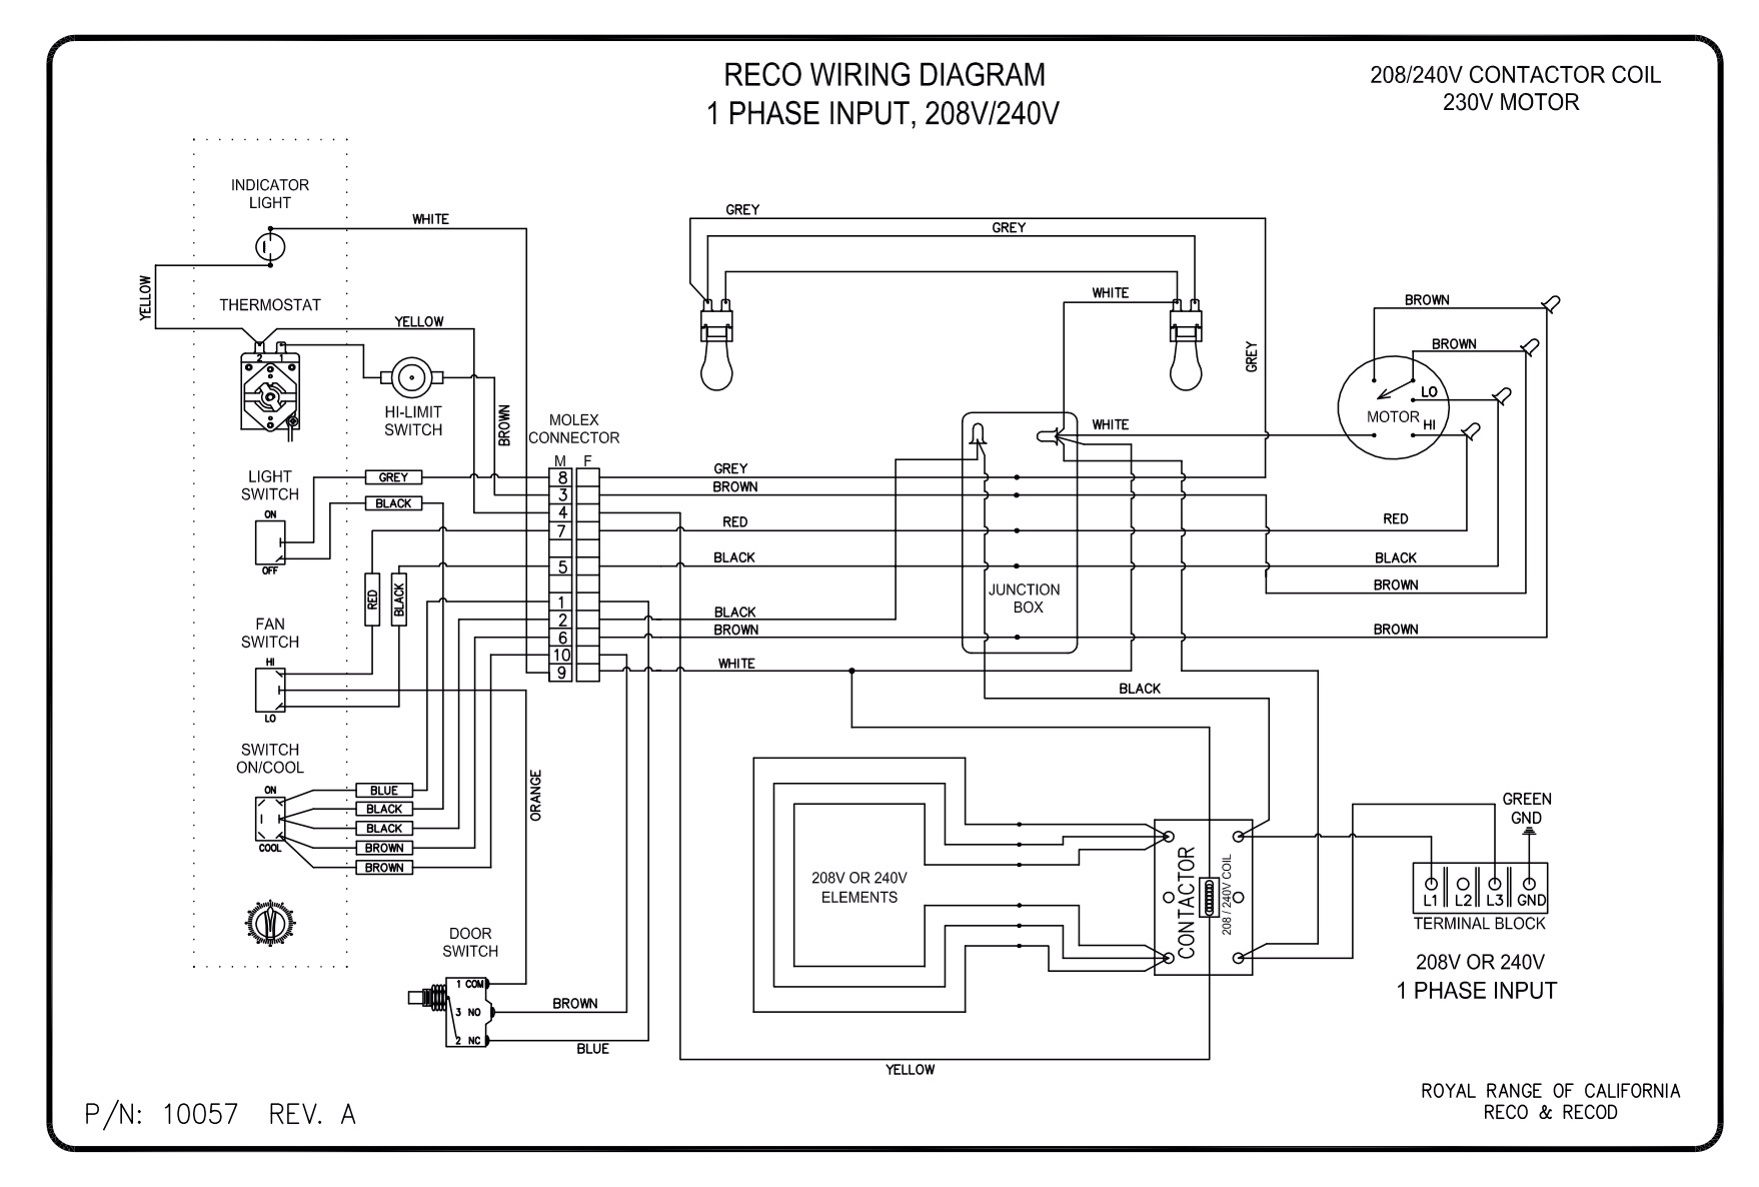 Smeg Oven Wiring Diagram And Schematics 75 Ironhead Diagrams Royal Range Of California Rh Royalranges Com Electric Wire